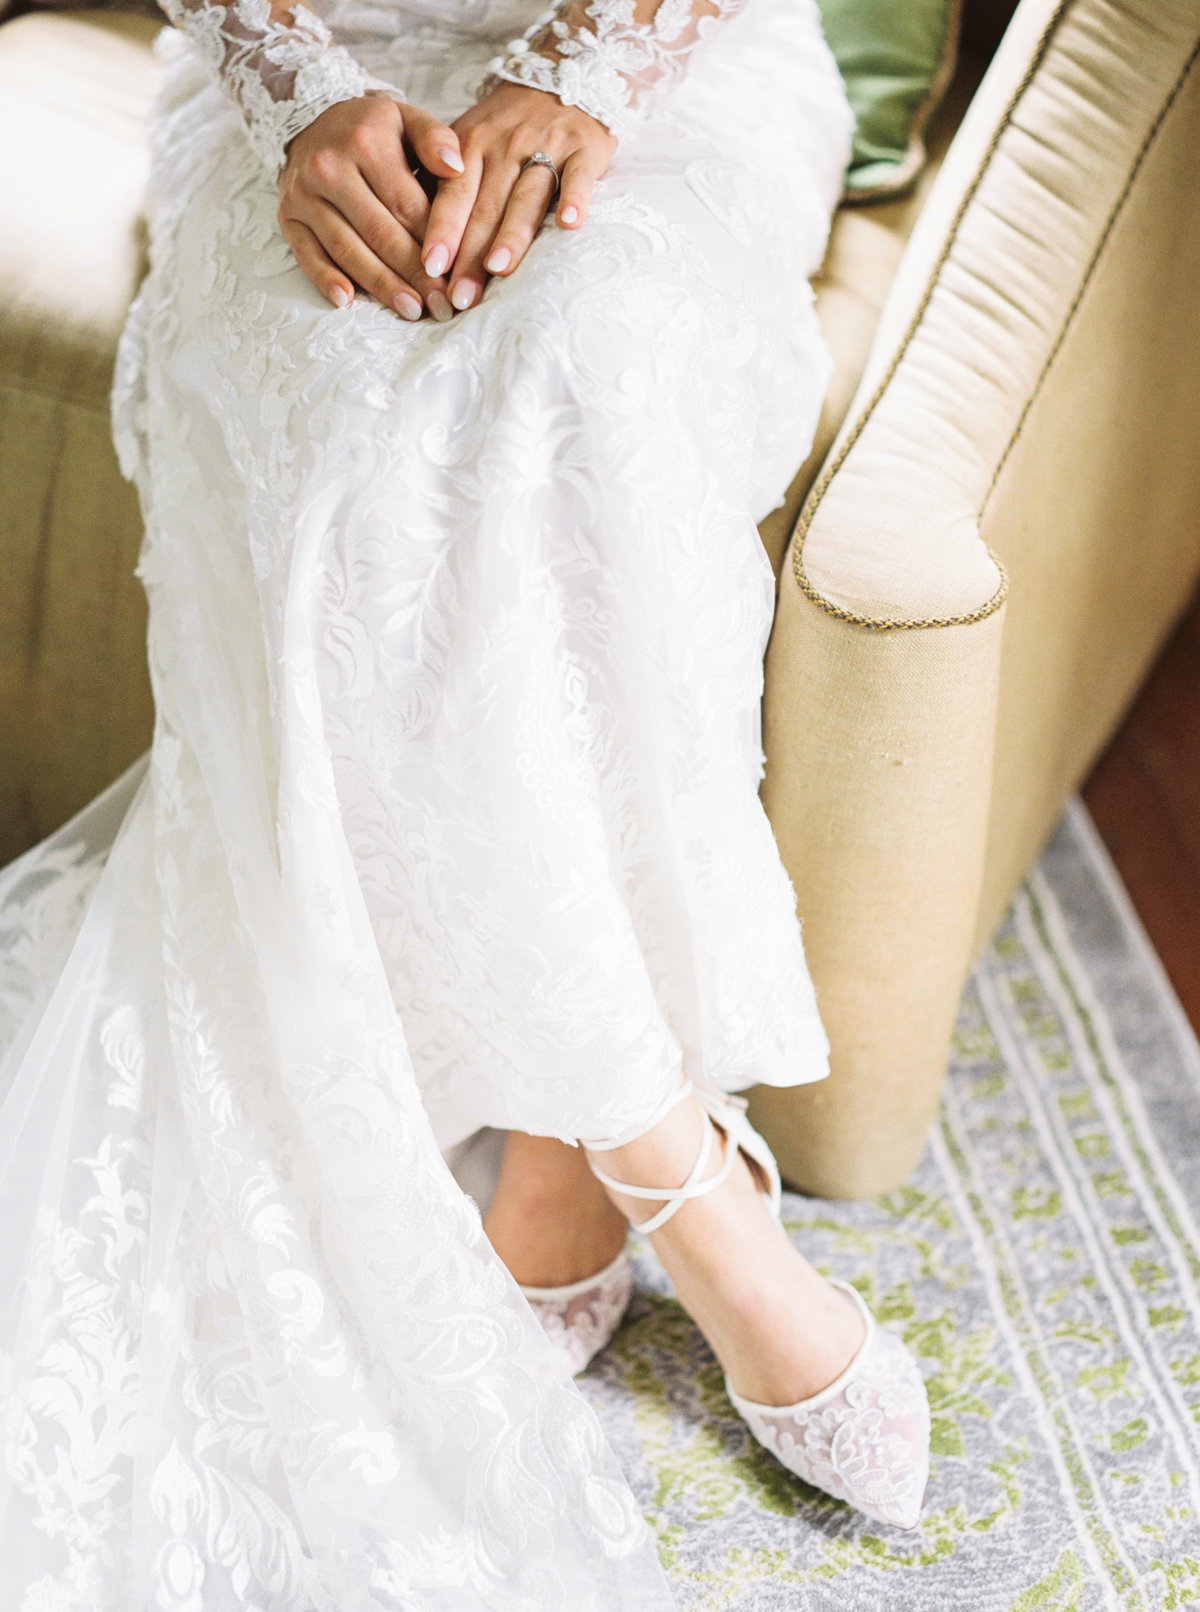 Bride with lace gown and shoes